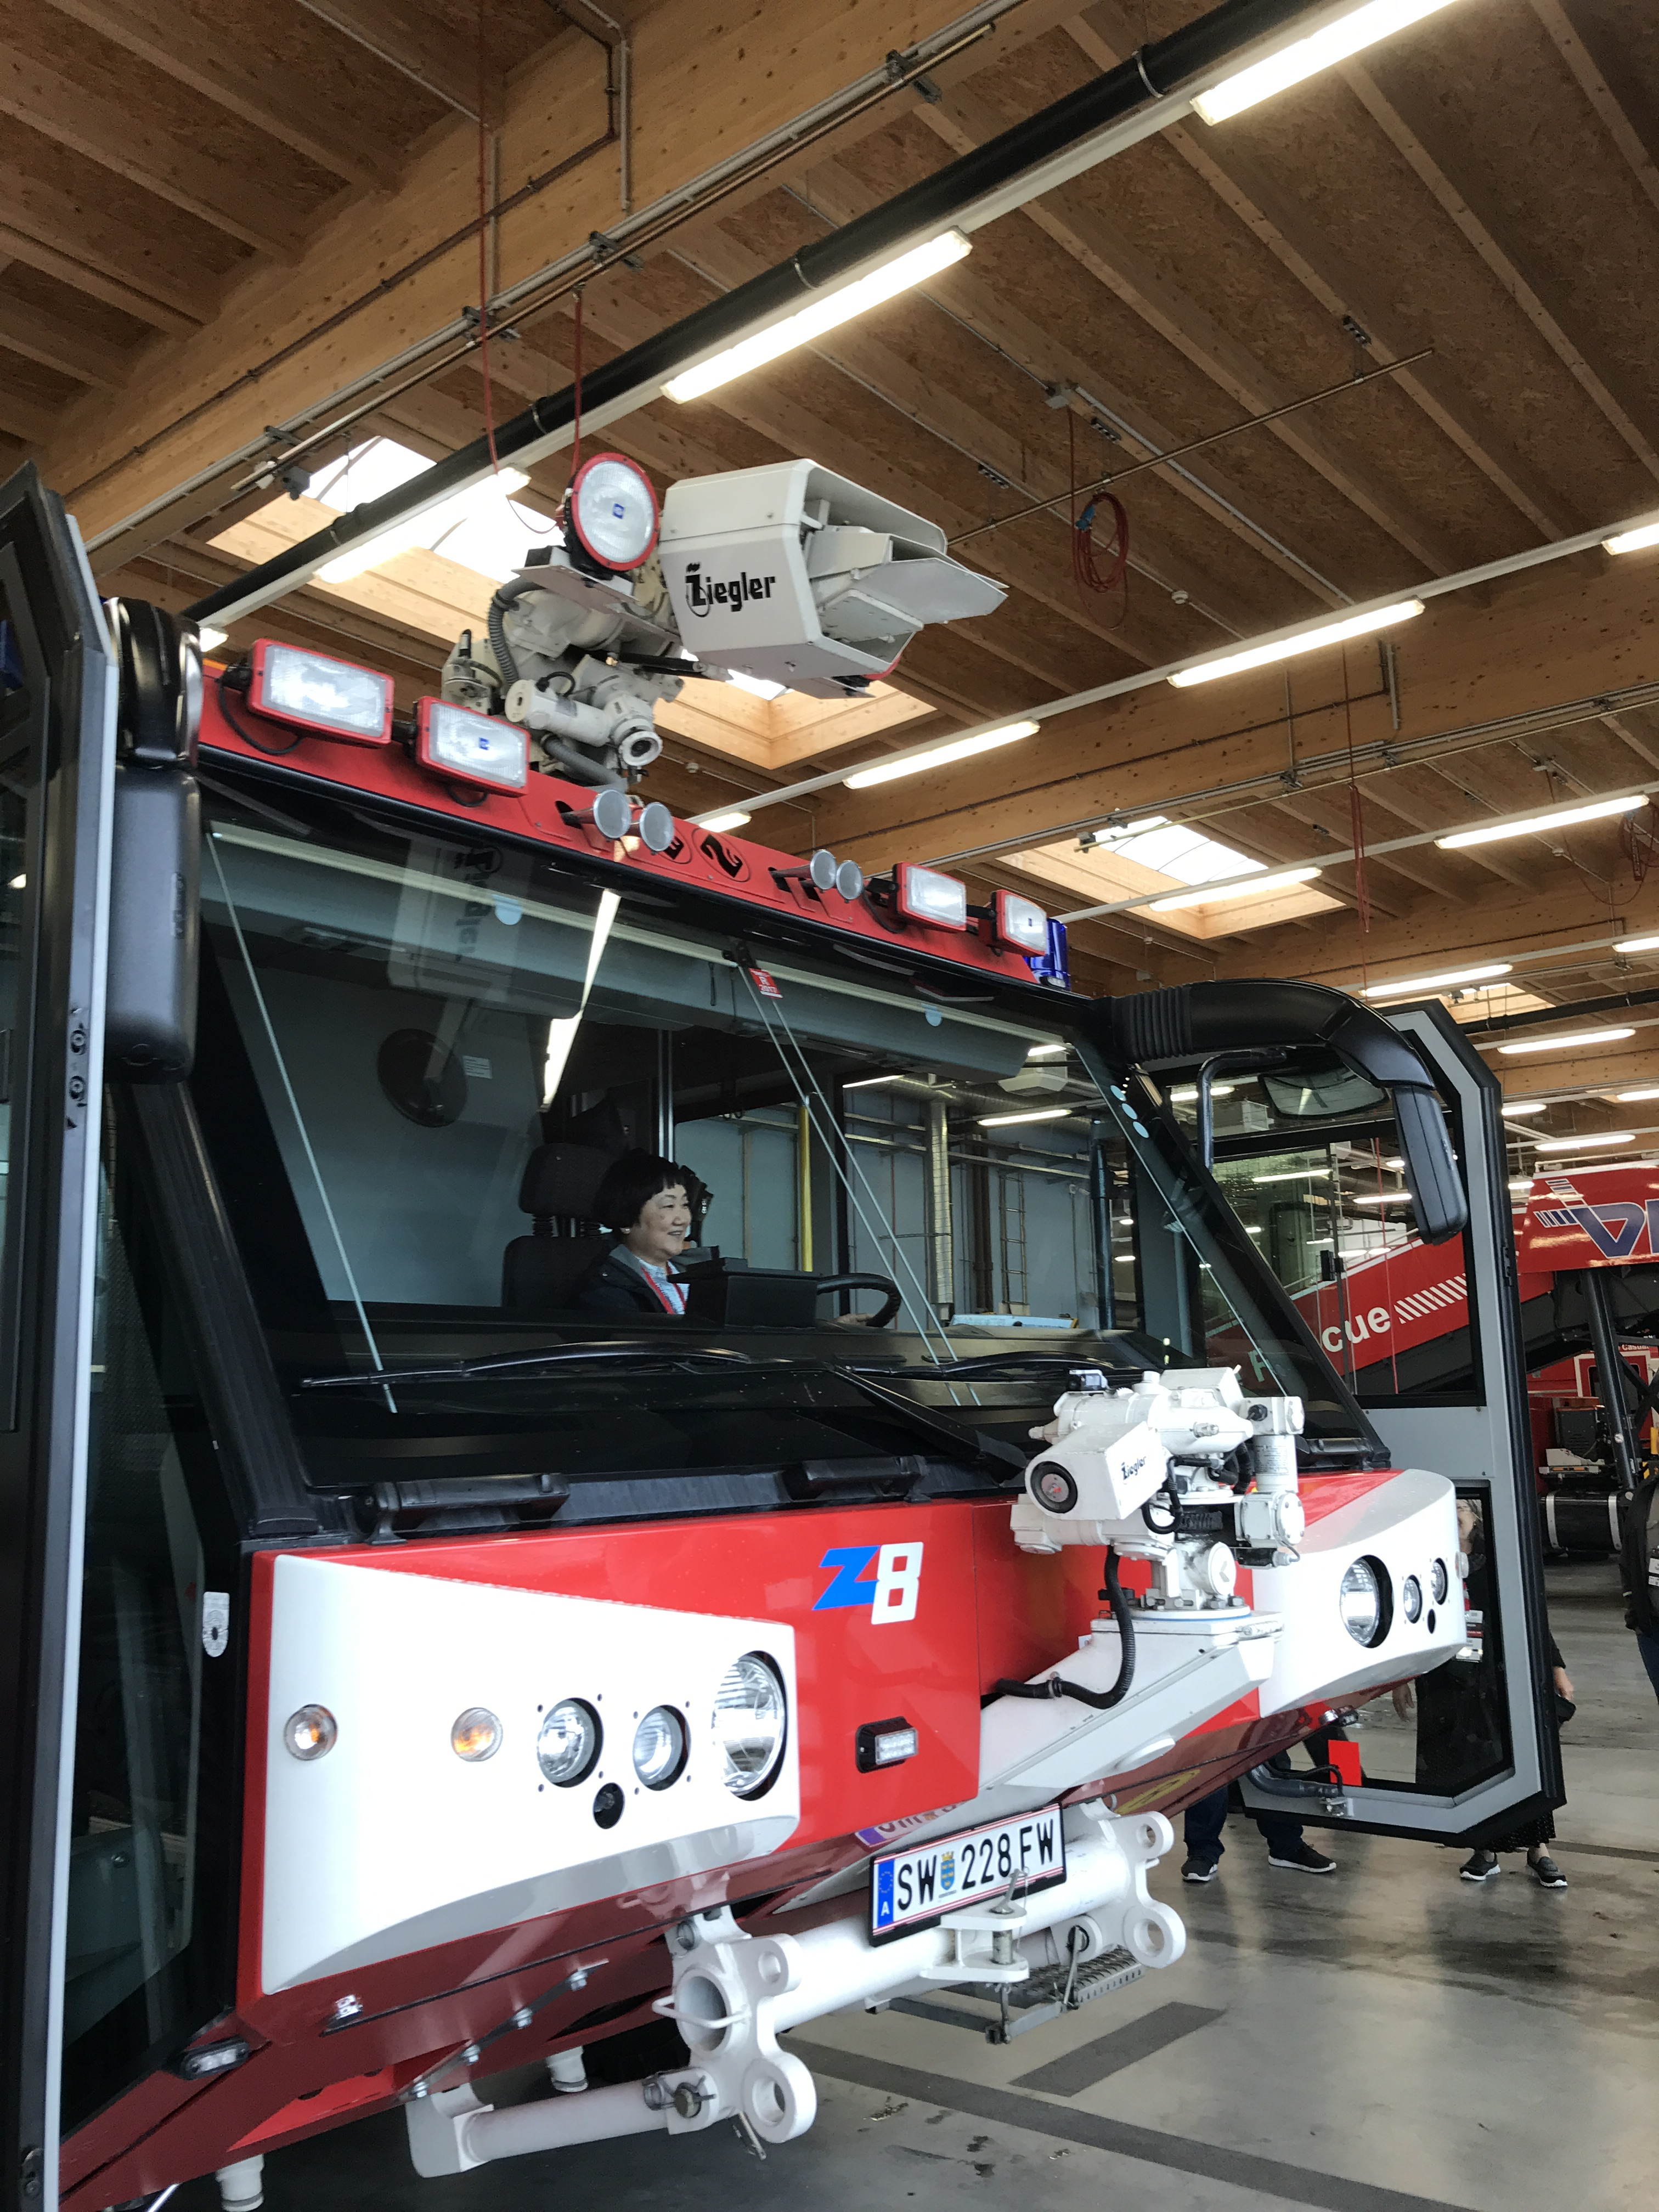 Vienna Airport Fire Truck used for spraying emergency foam